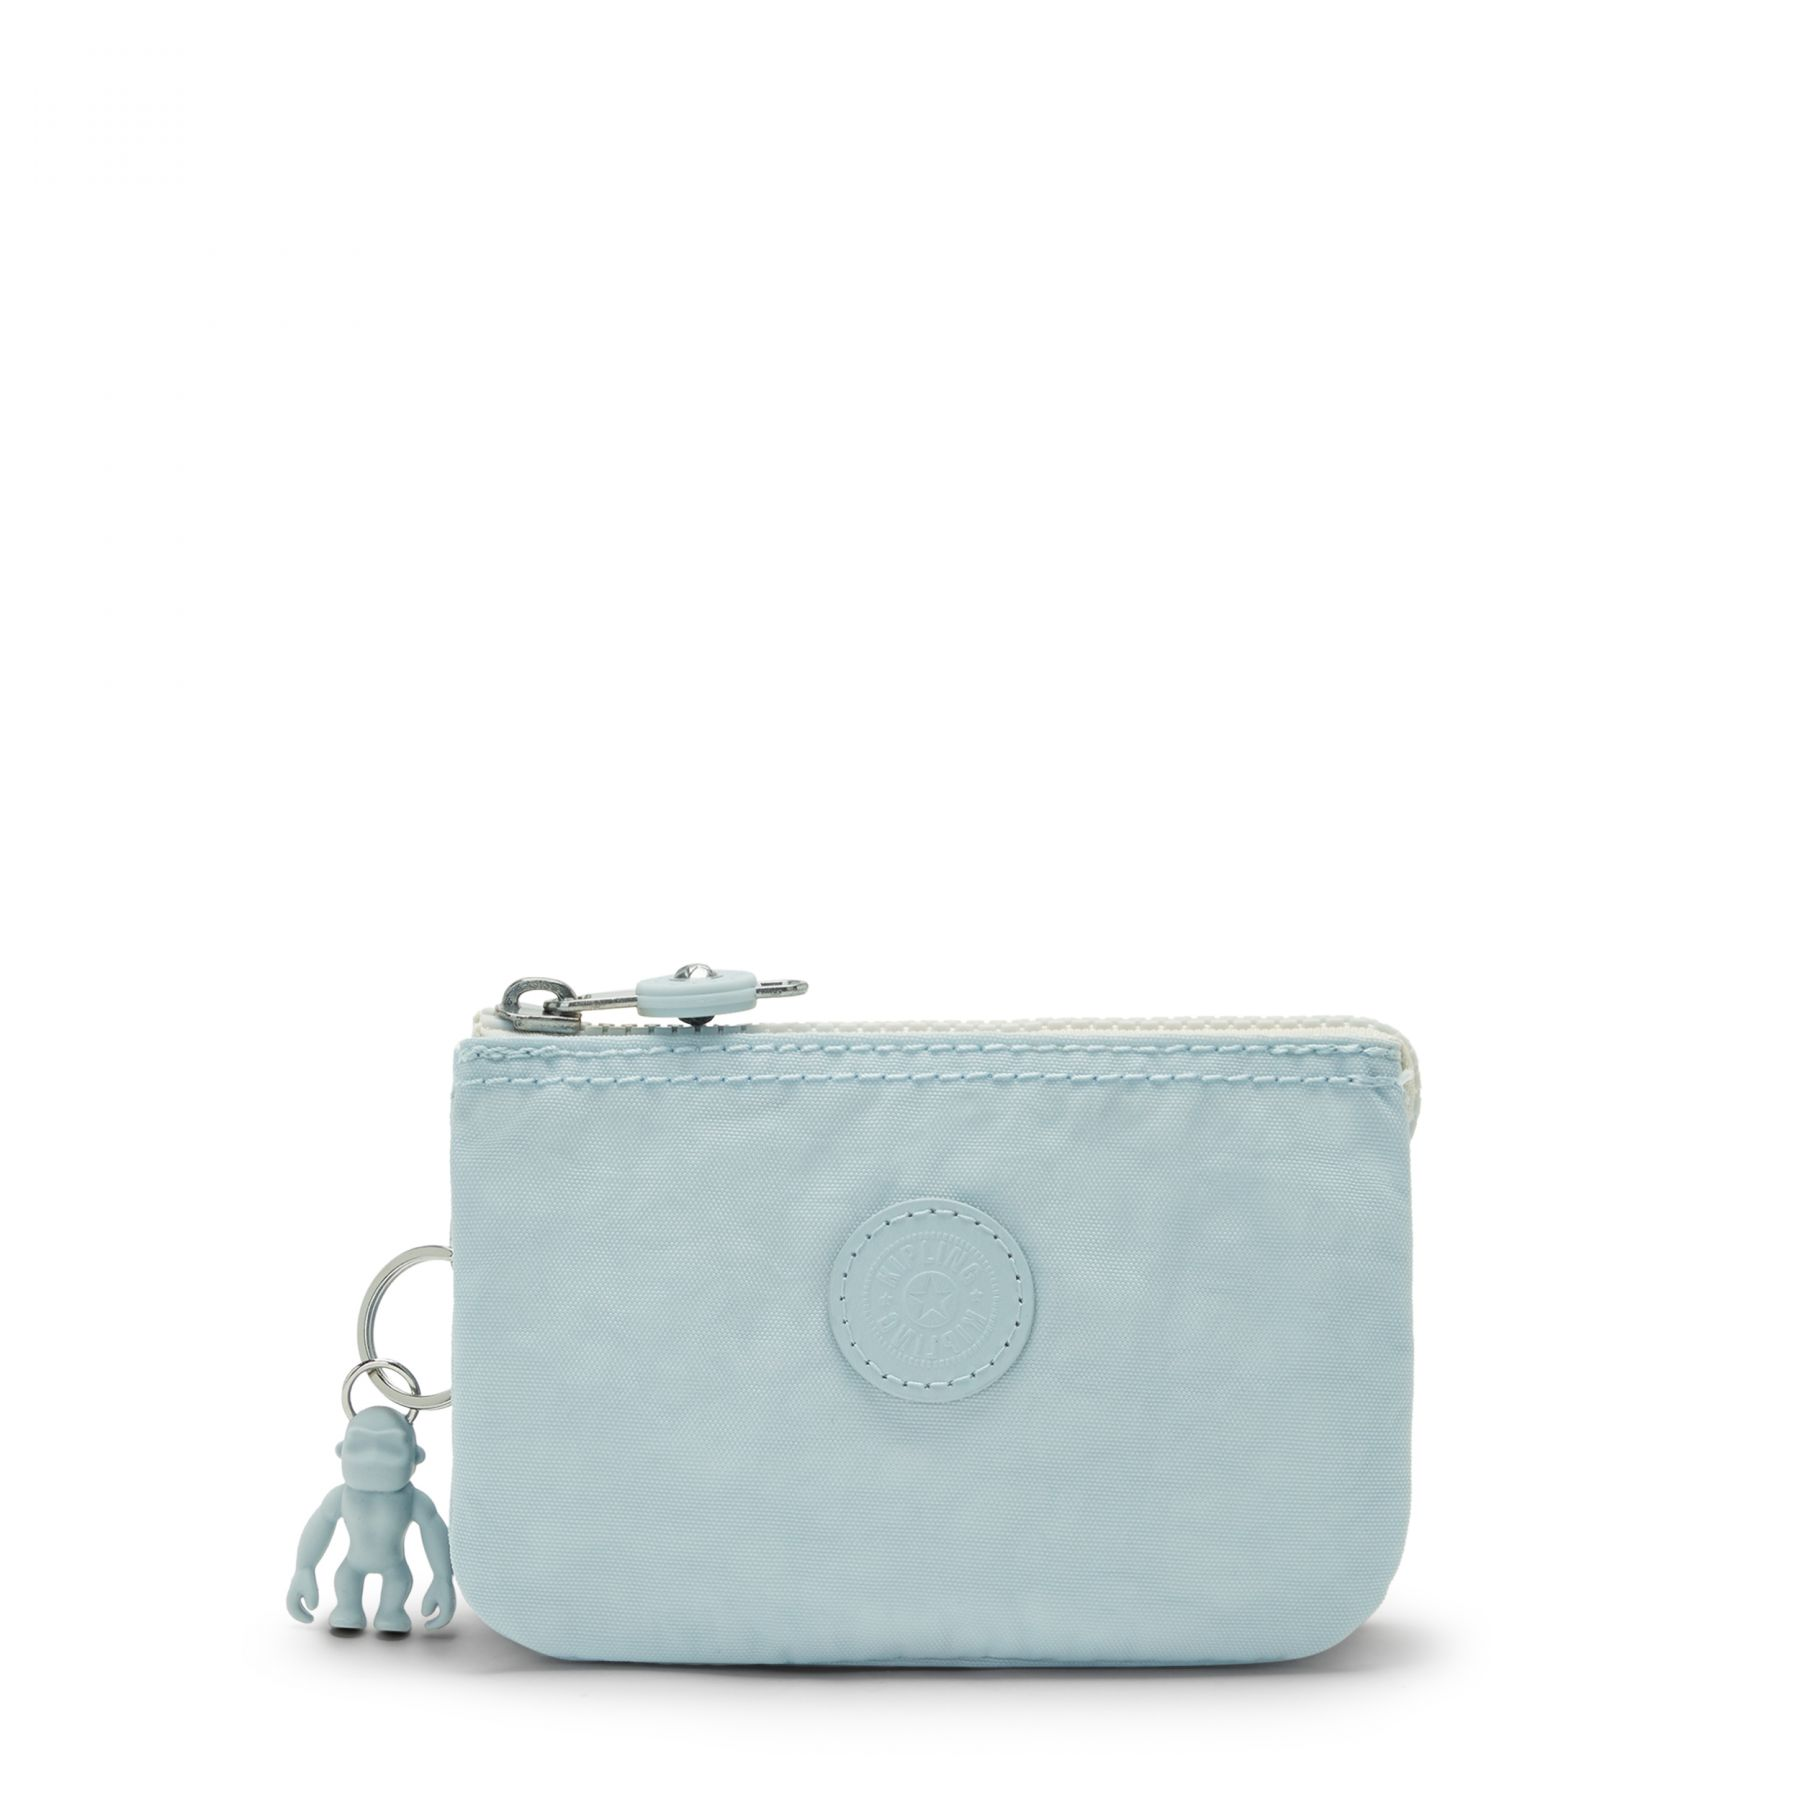 CREATIVITY S ACCESSORIES by Kipling - Front view